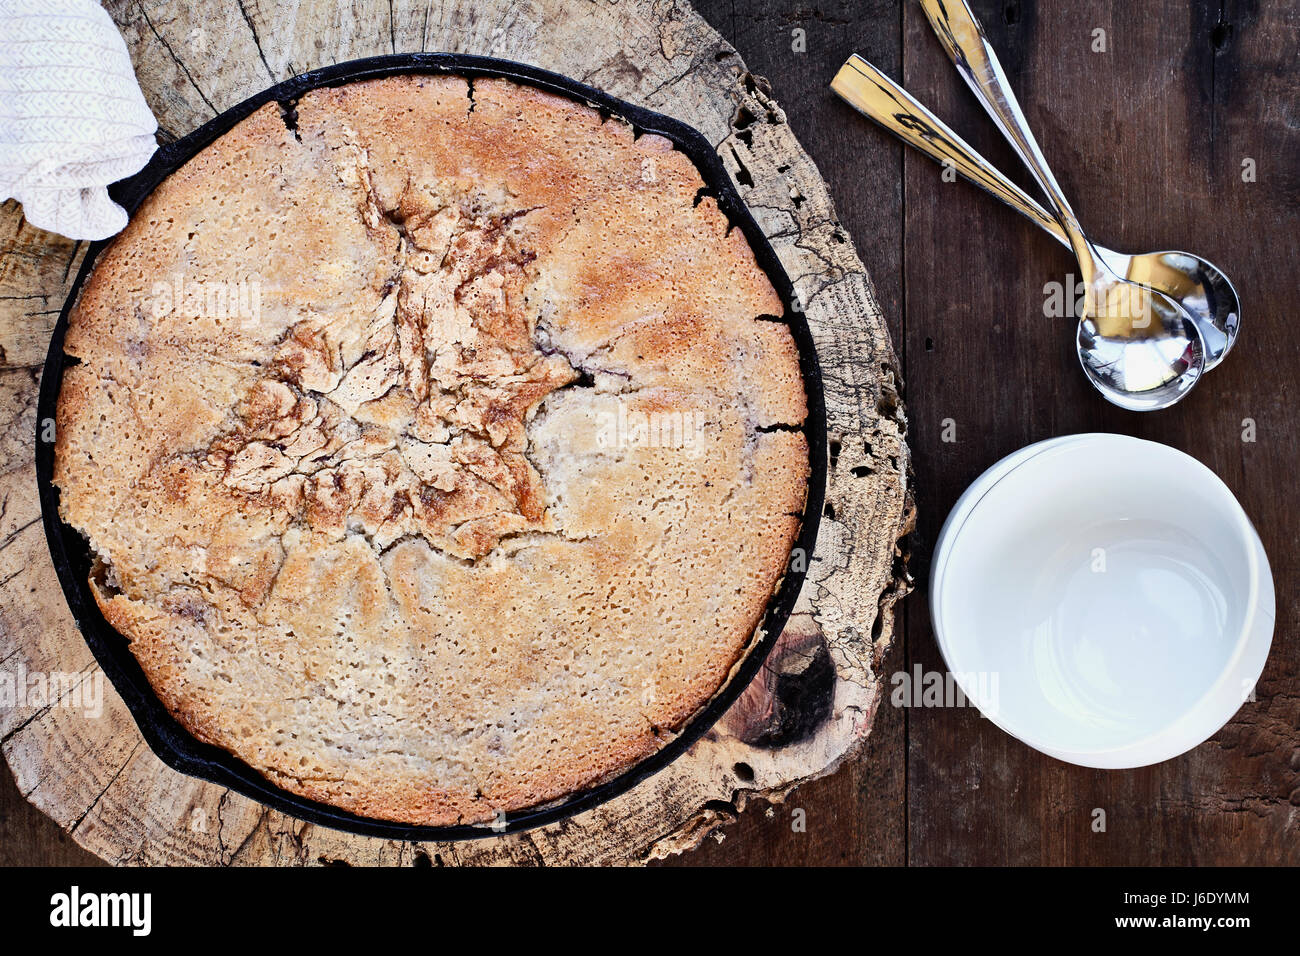 Above image of a blueberry and peach cobbler baked in a cast iron skillet over a rustic wood table top. Image shot - Stock Image